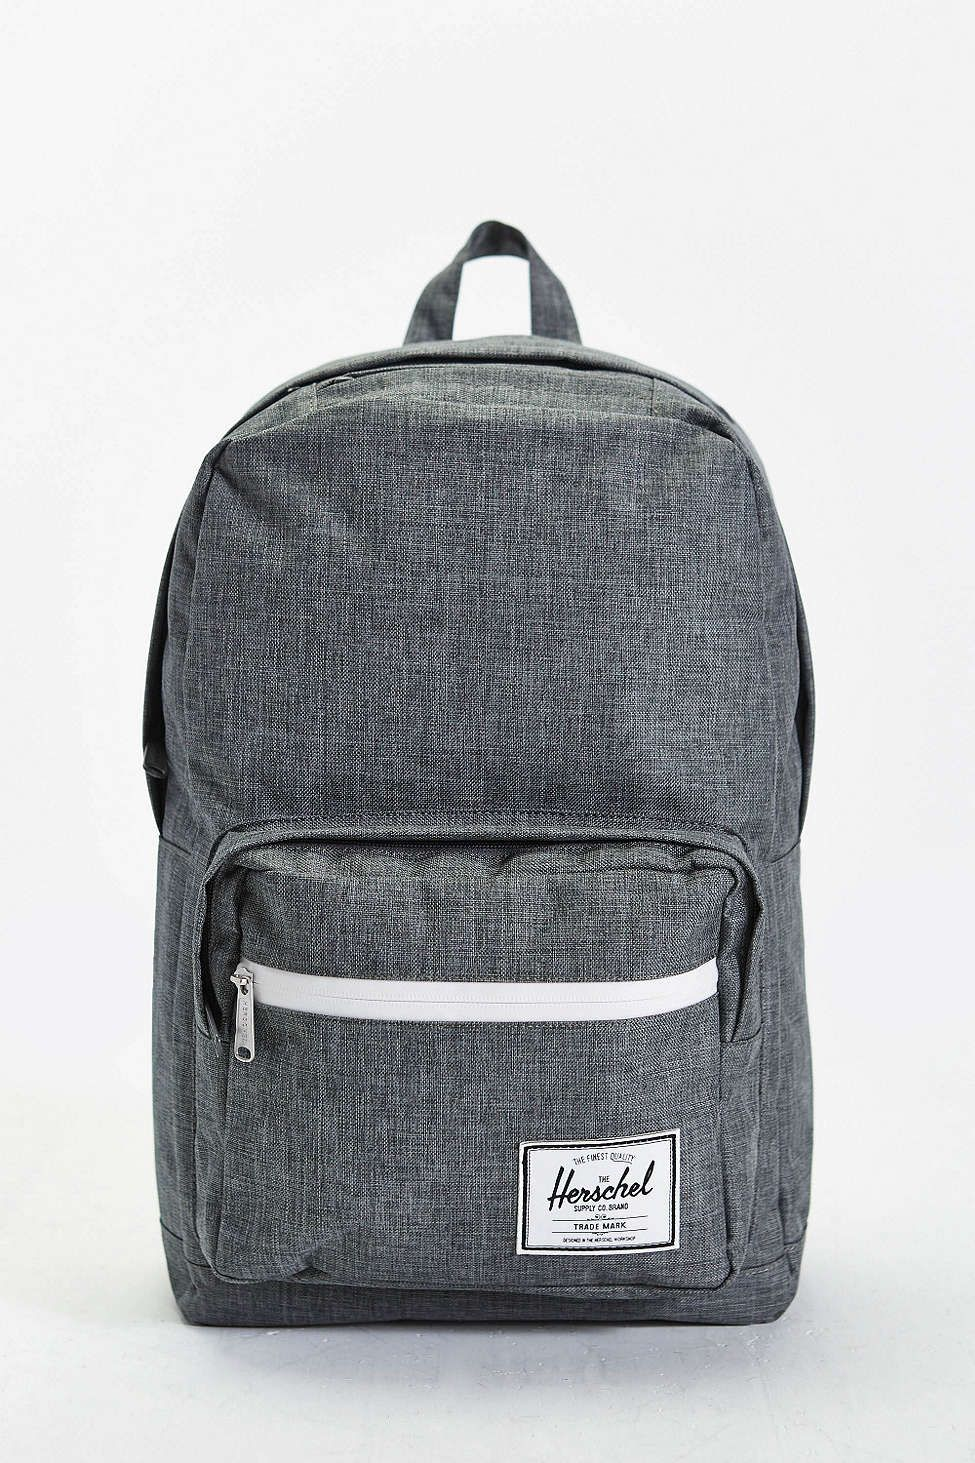 982c2a8c5d32 Herschel Supply Co. Pop Quiz Charcoal Cross-Stitch Backpack